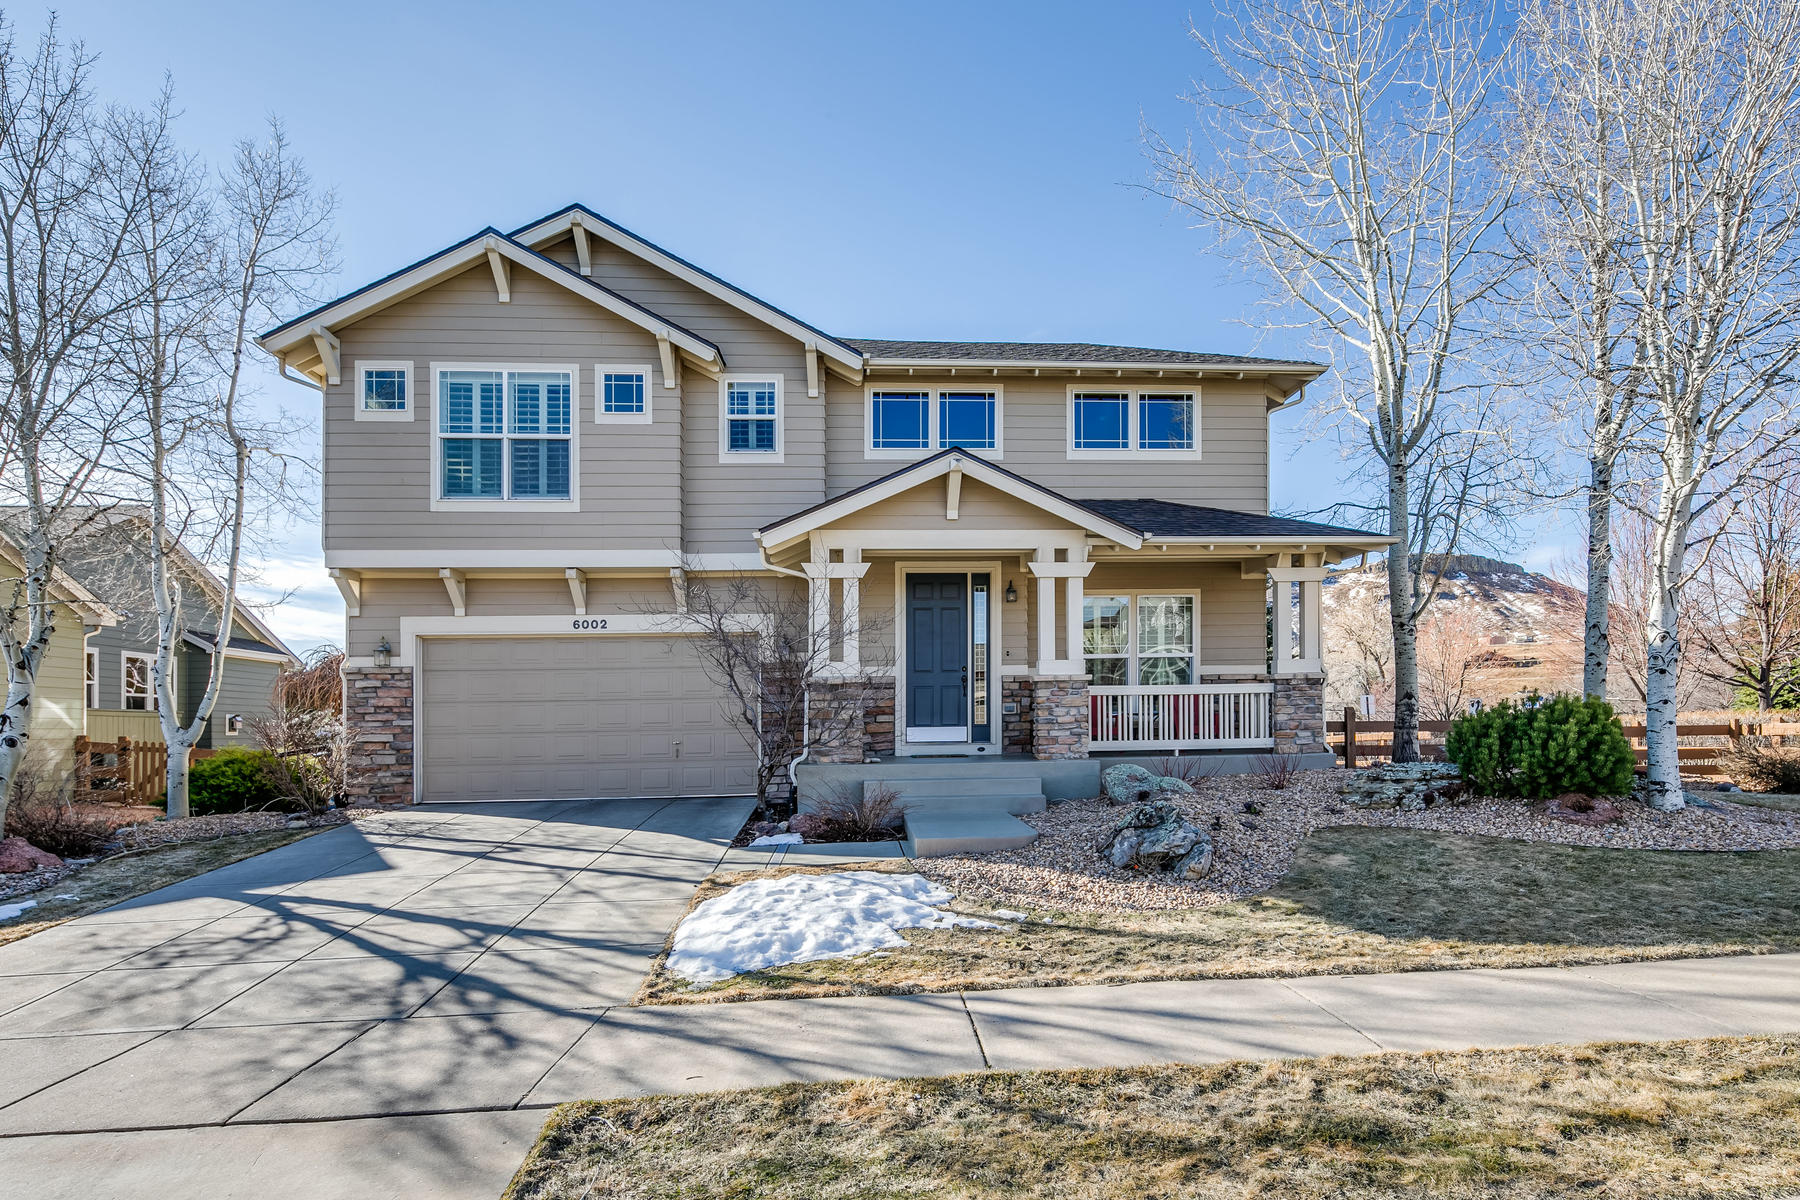 Single Family Homes のために 売買 アット Look No Further! 6002 Umber Street Arvada, コロラド 80403 アメリカ